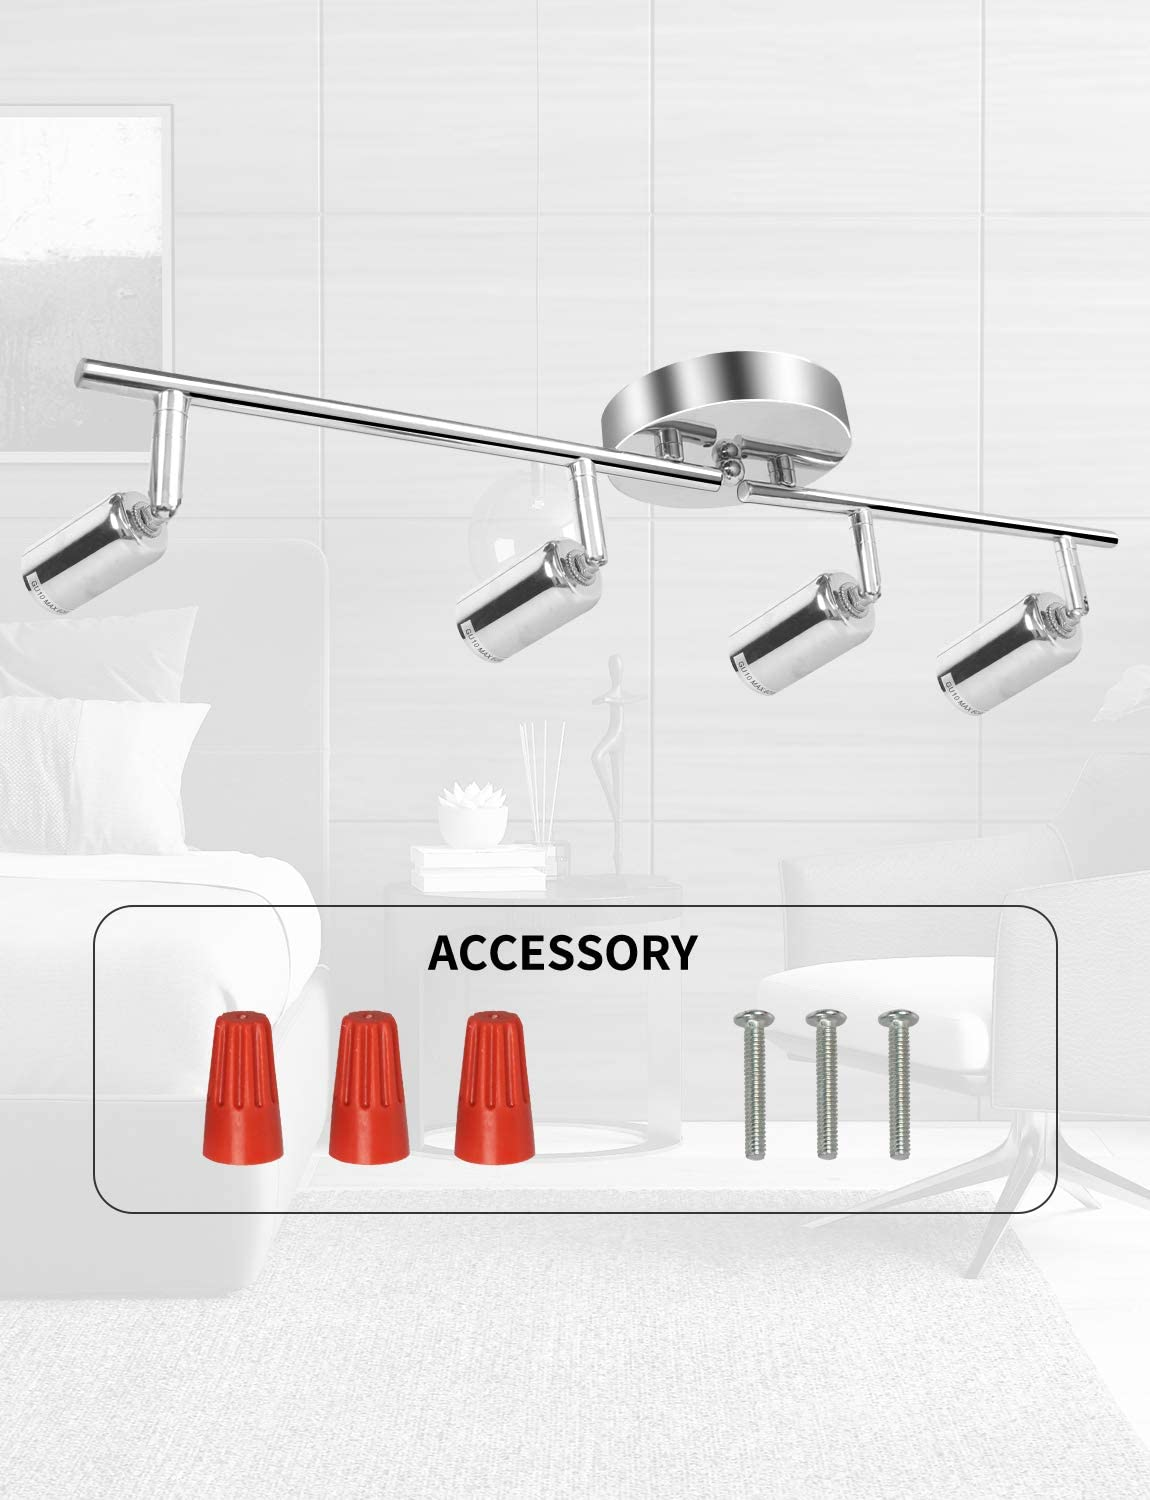 4 LED Track Lighting Kit Worktop Flexible Adjustable Folded Arms and Heads Modern Chrome Finishing Track Light Fixtures for Kitchen Hallway Bedroom GU10 Base Bulb Not Included